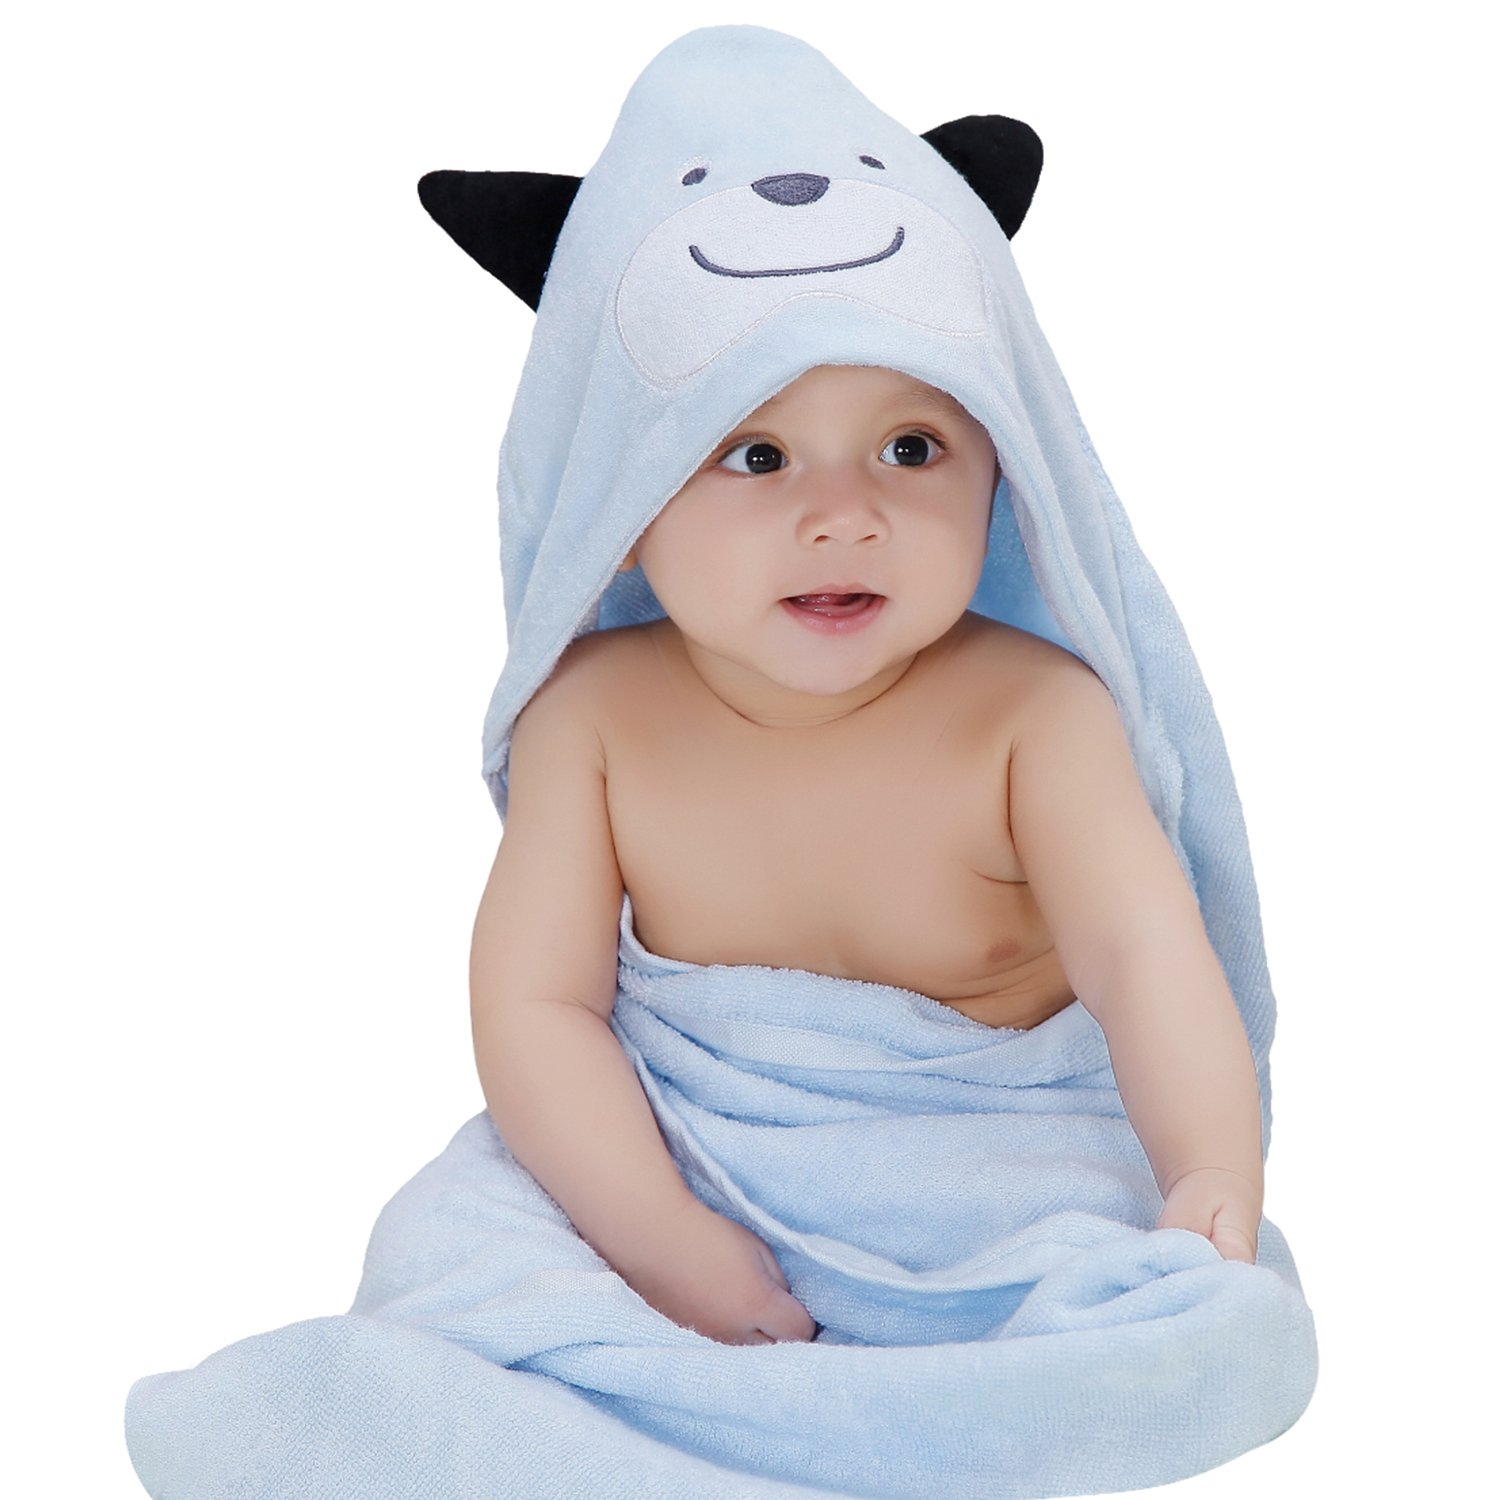 Biubee Extra Soft and Thick Baby Organic Hooded Towel -- Antibacterial and Hypoallergenic Bamboo Bath Towel for Infant and Toddler (blue dog)